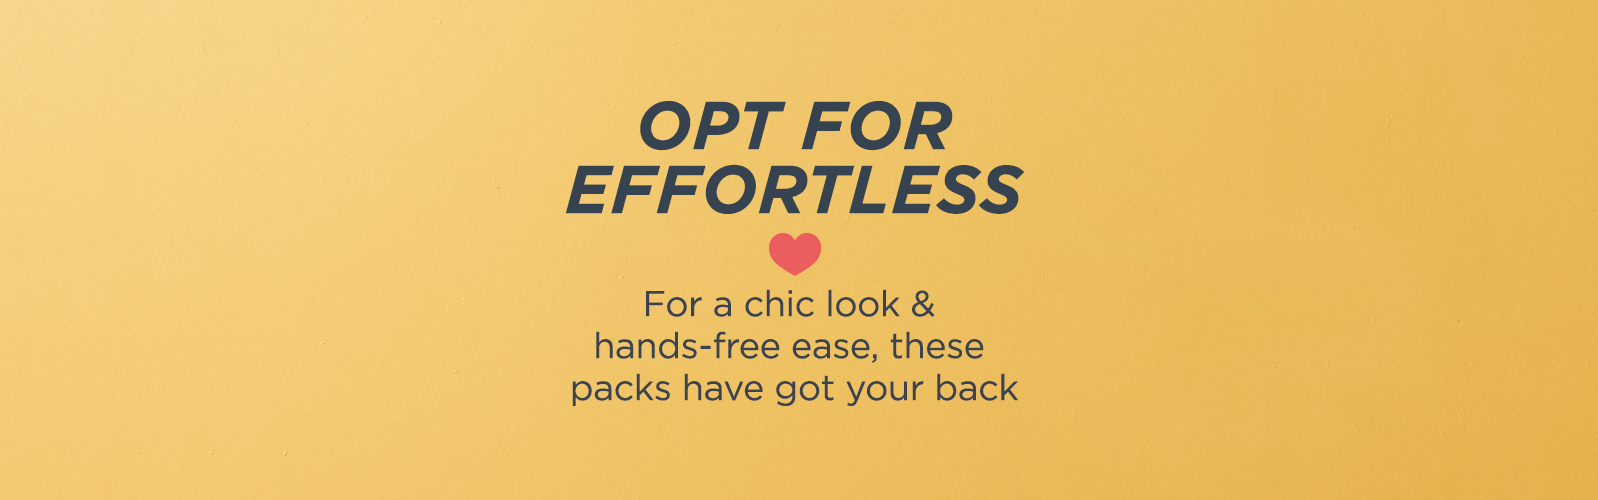 Opt for Effortless. For a chic look & hands-free ease, these packs have got your back